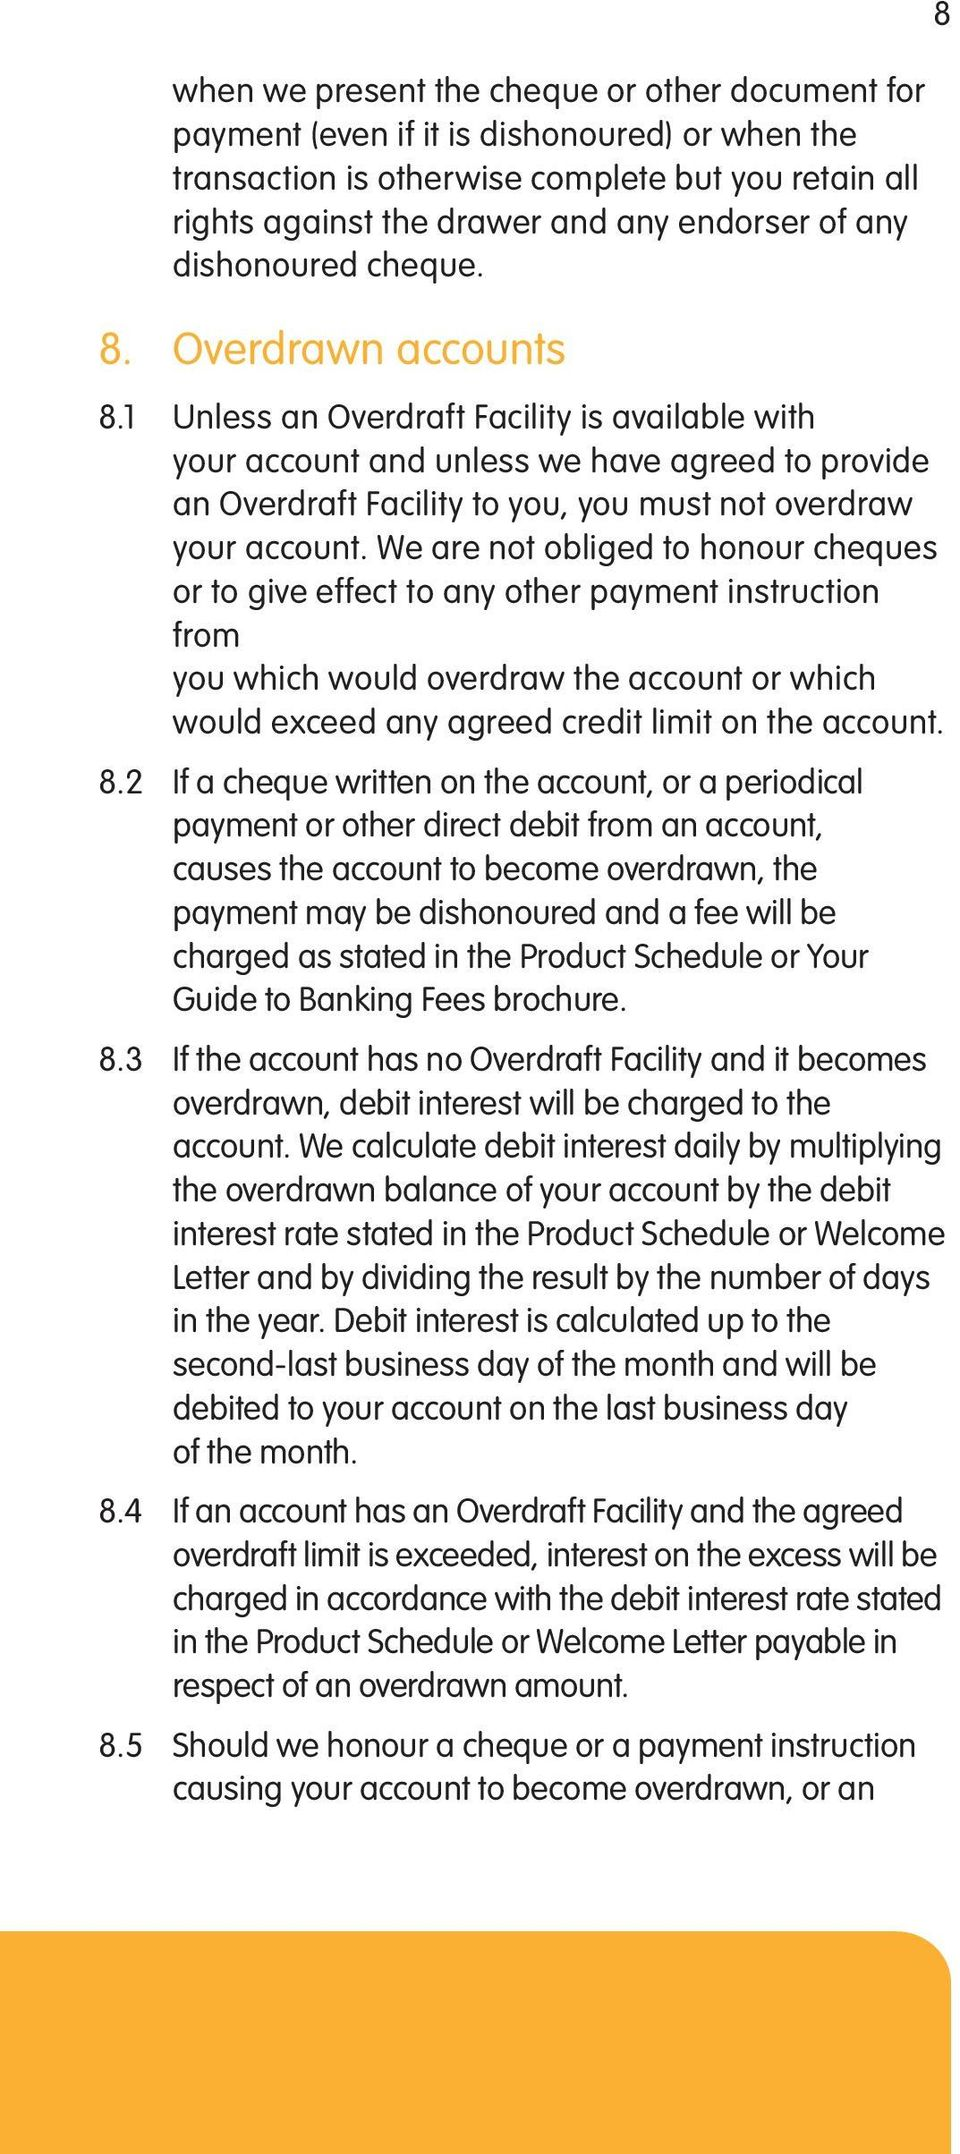 1 Unless an Overdraft Facility is available with your account and unless we have agreed to provide an Overdraft Facility to you, you must not overdraw your account.